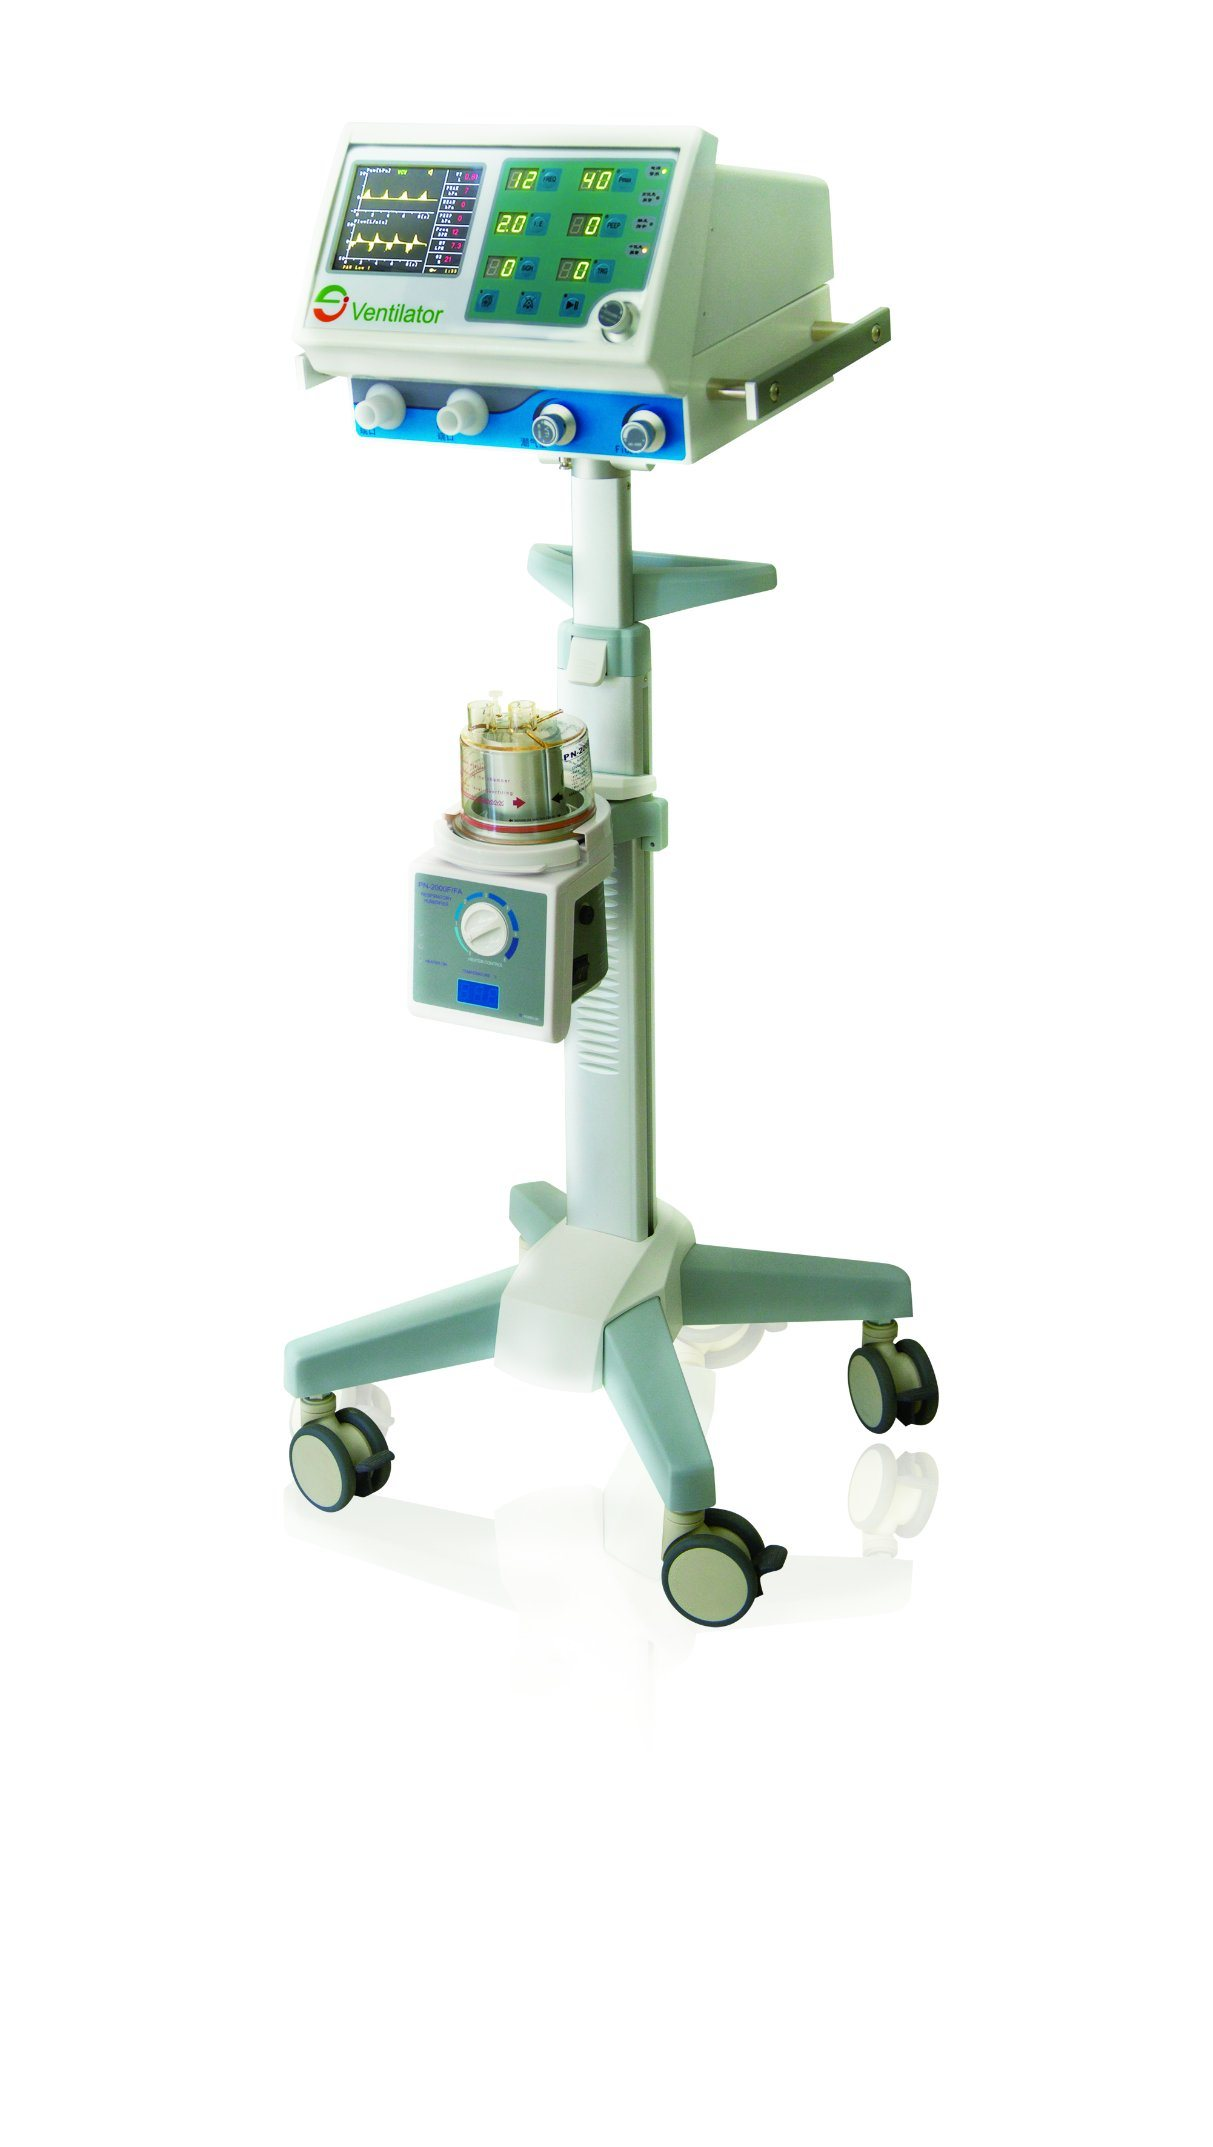 High Quality Medical/Hospital Ventilator Lh8500 for Operation and Rehabilitation pictures & photos